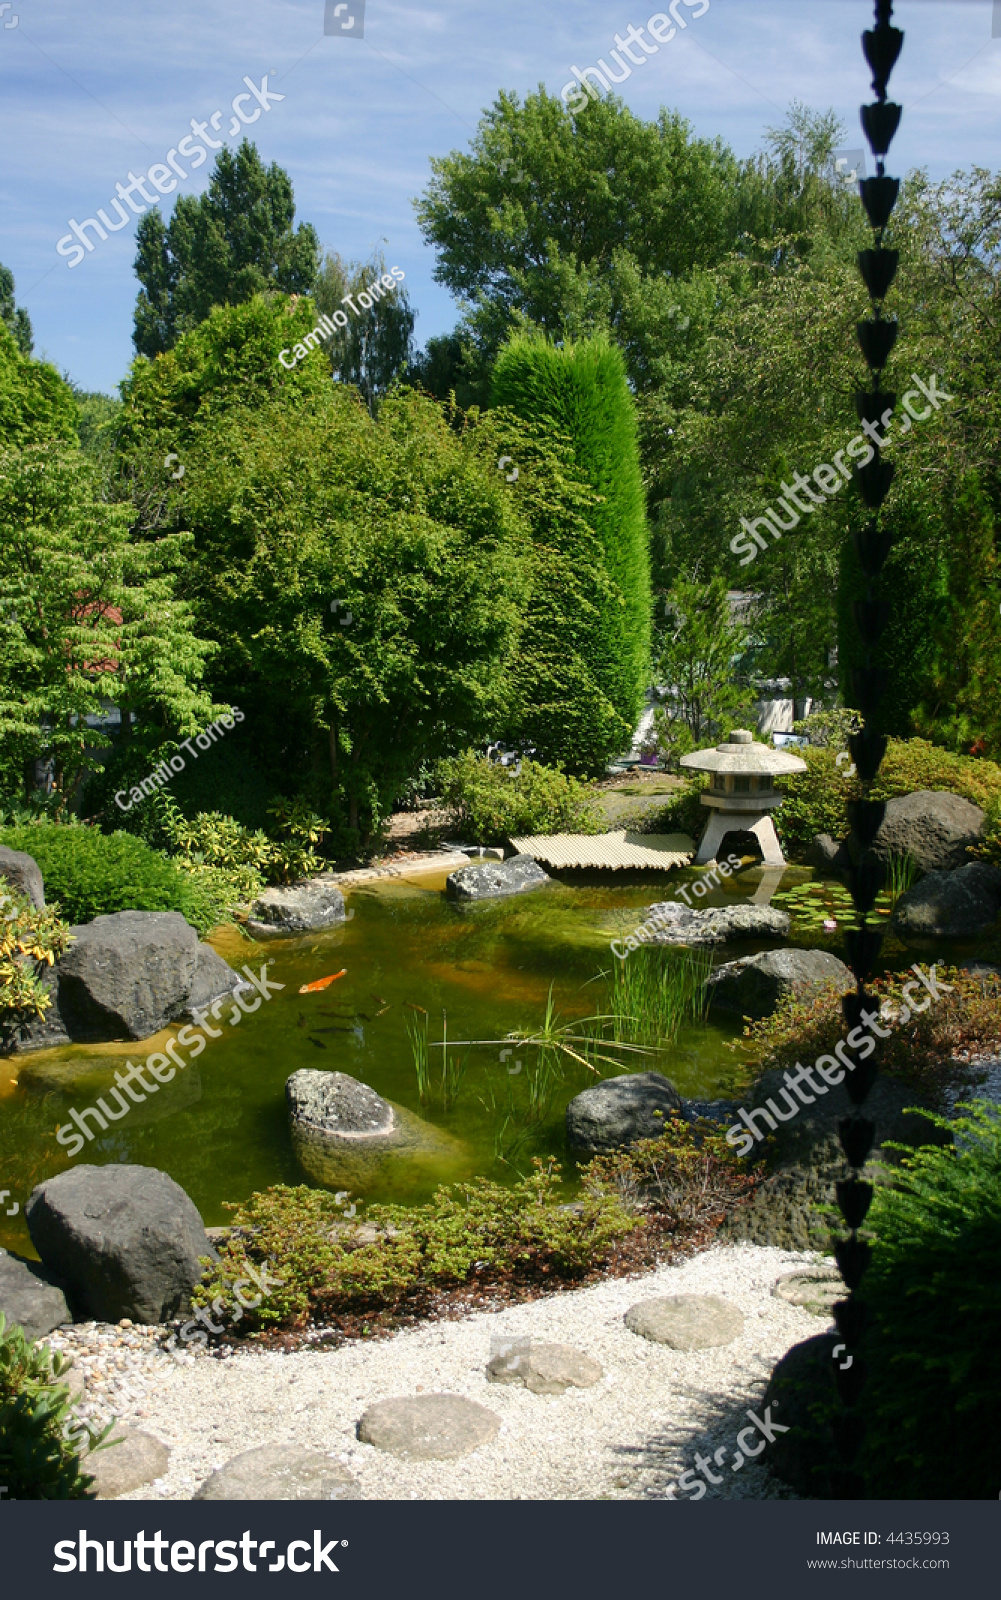 Beautiful traditional japanese garden koi carps stock for Your pond japan